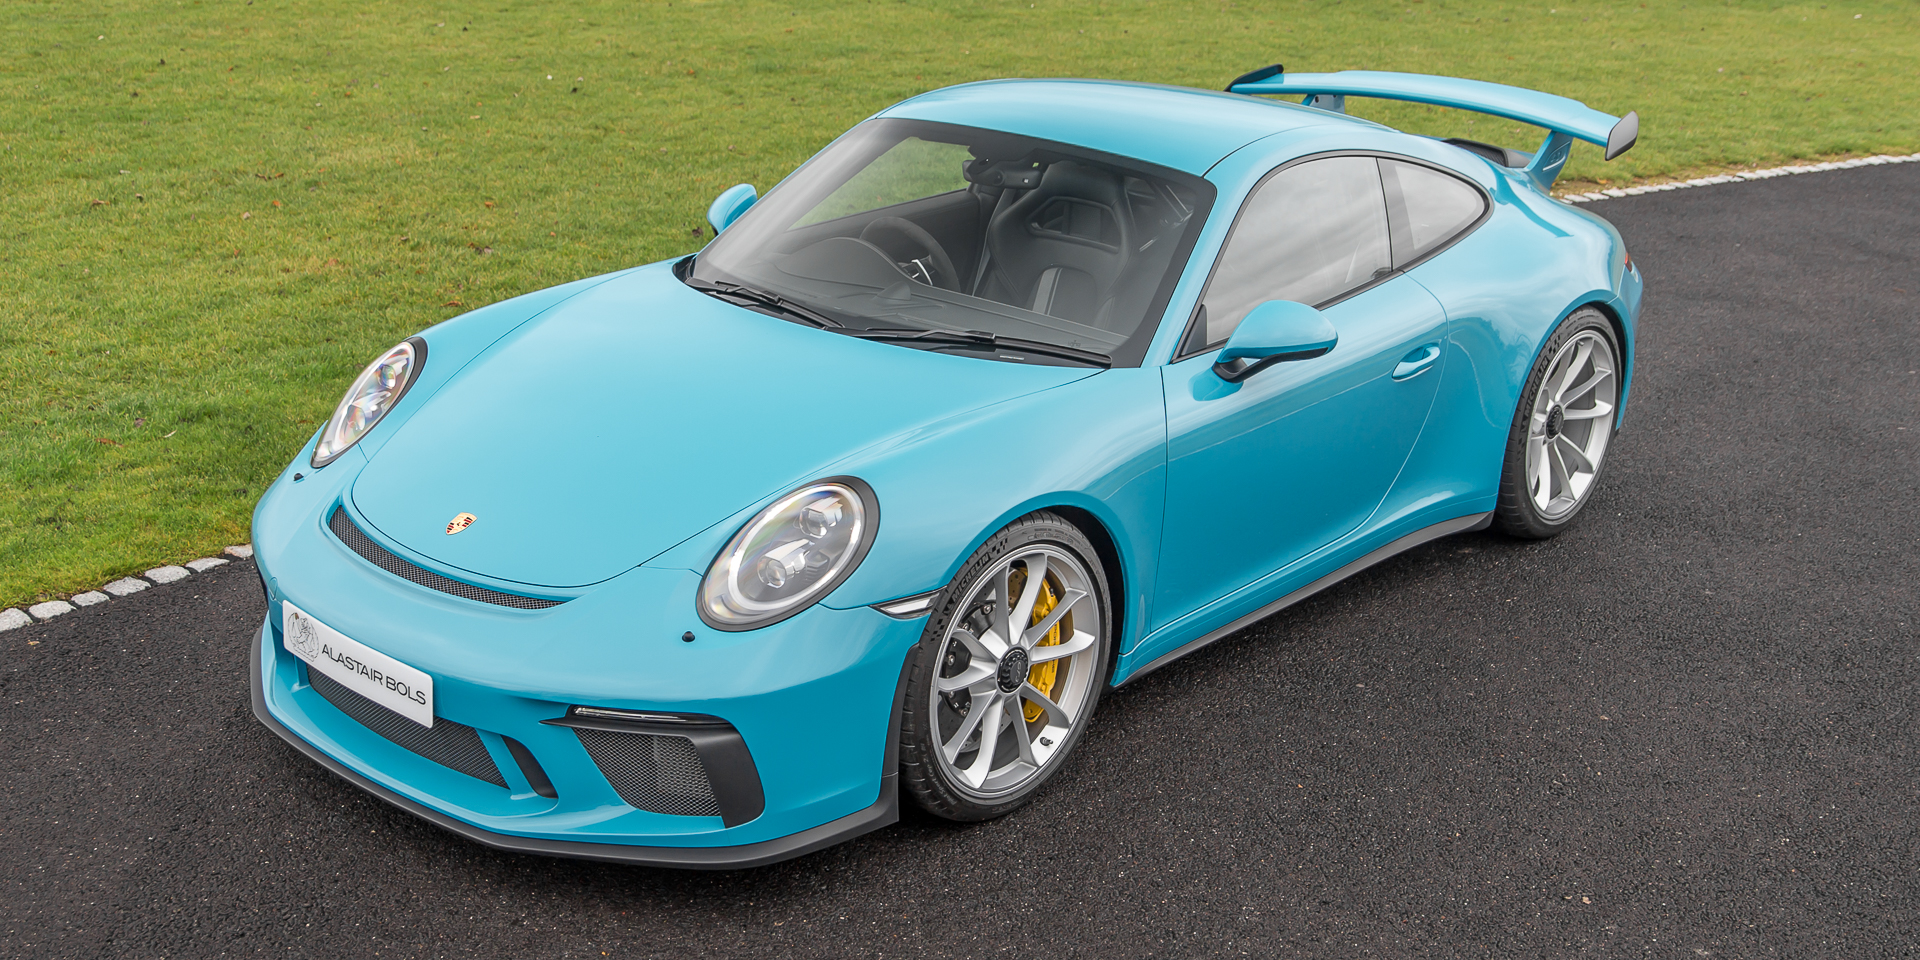 Porsche 991.2 GT3 CS – Miami Blue